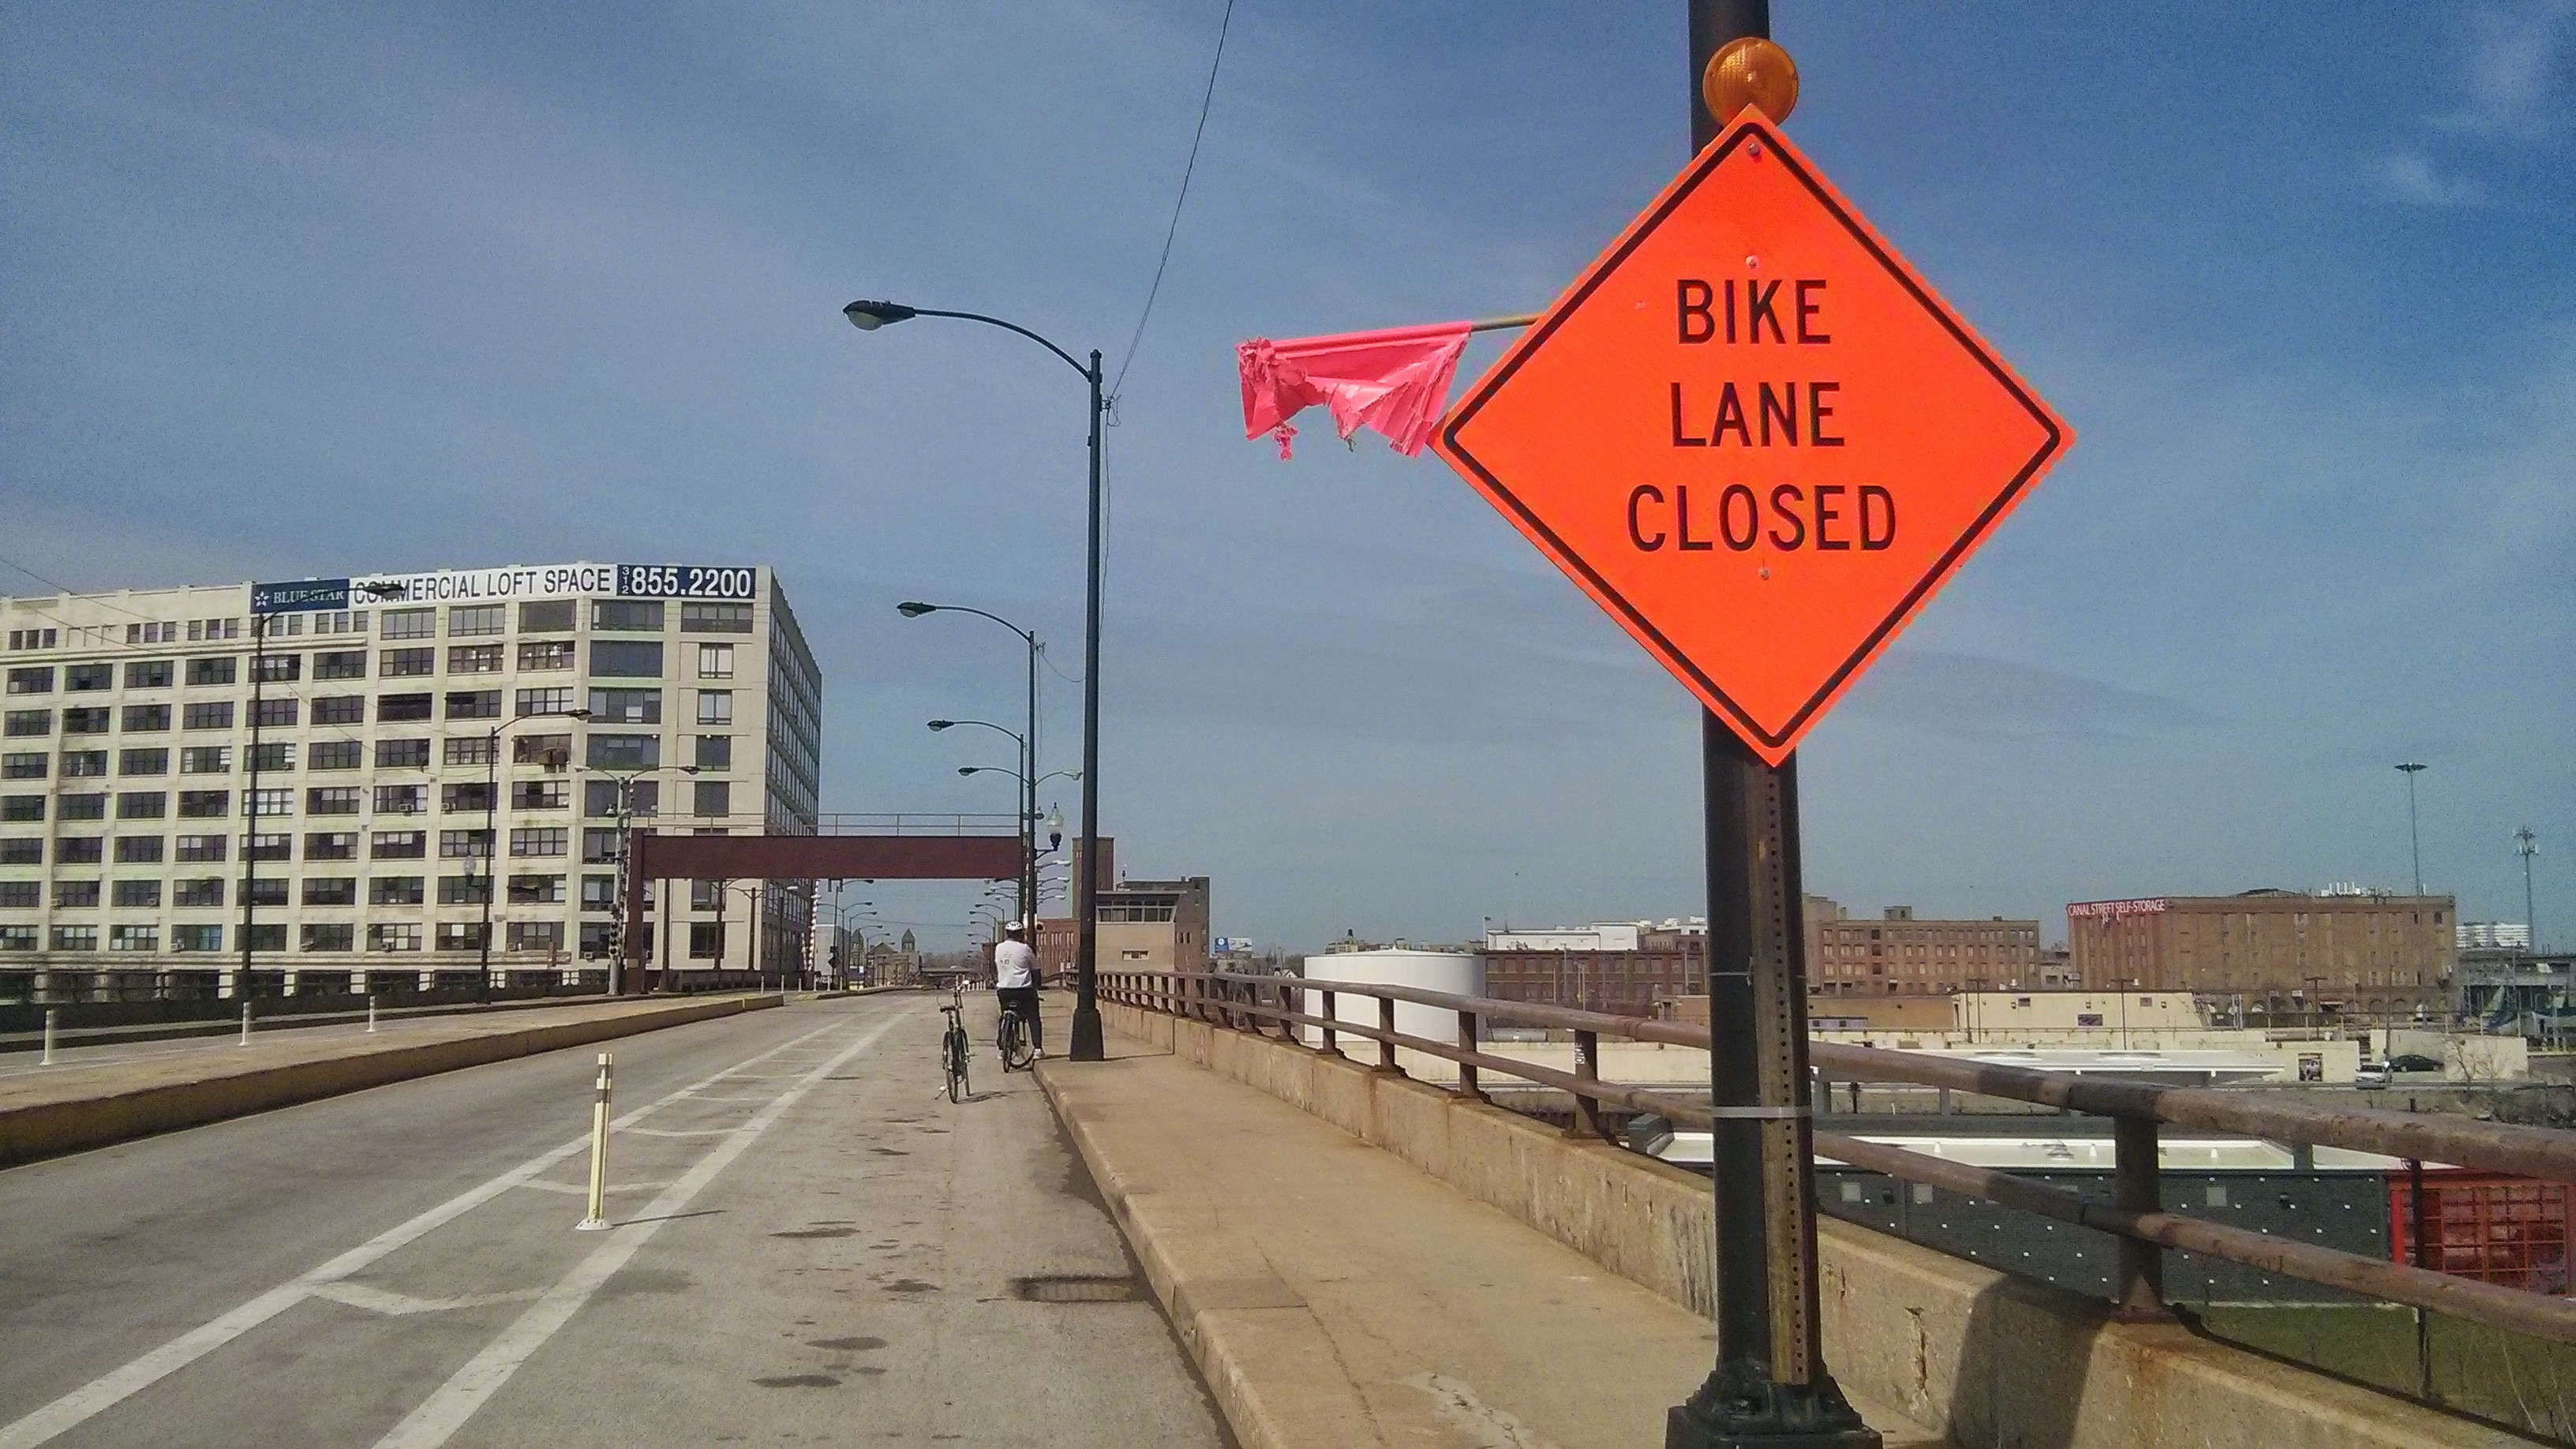 18th Street Bridge to Open Monday April 13th